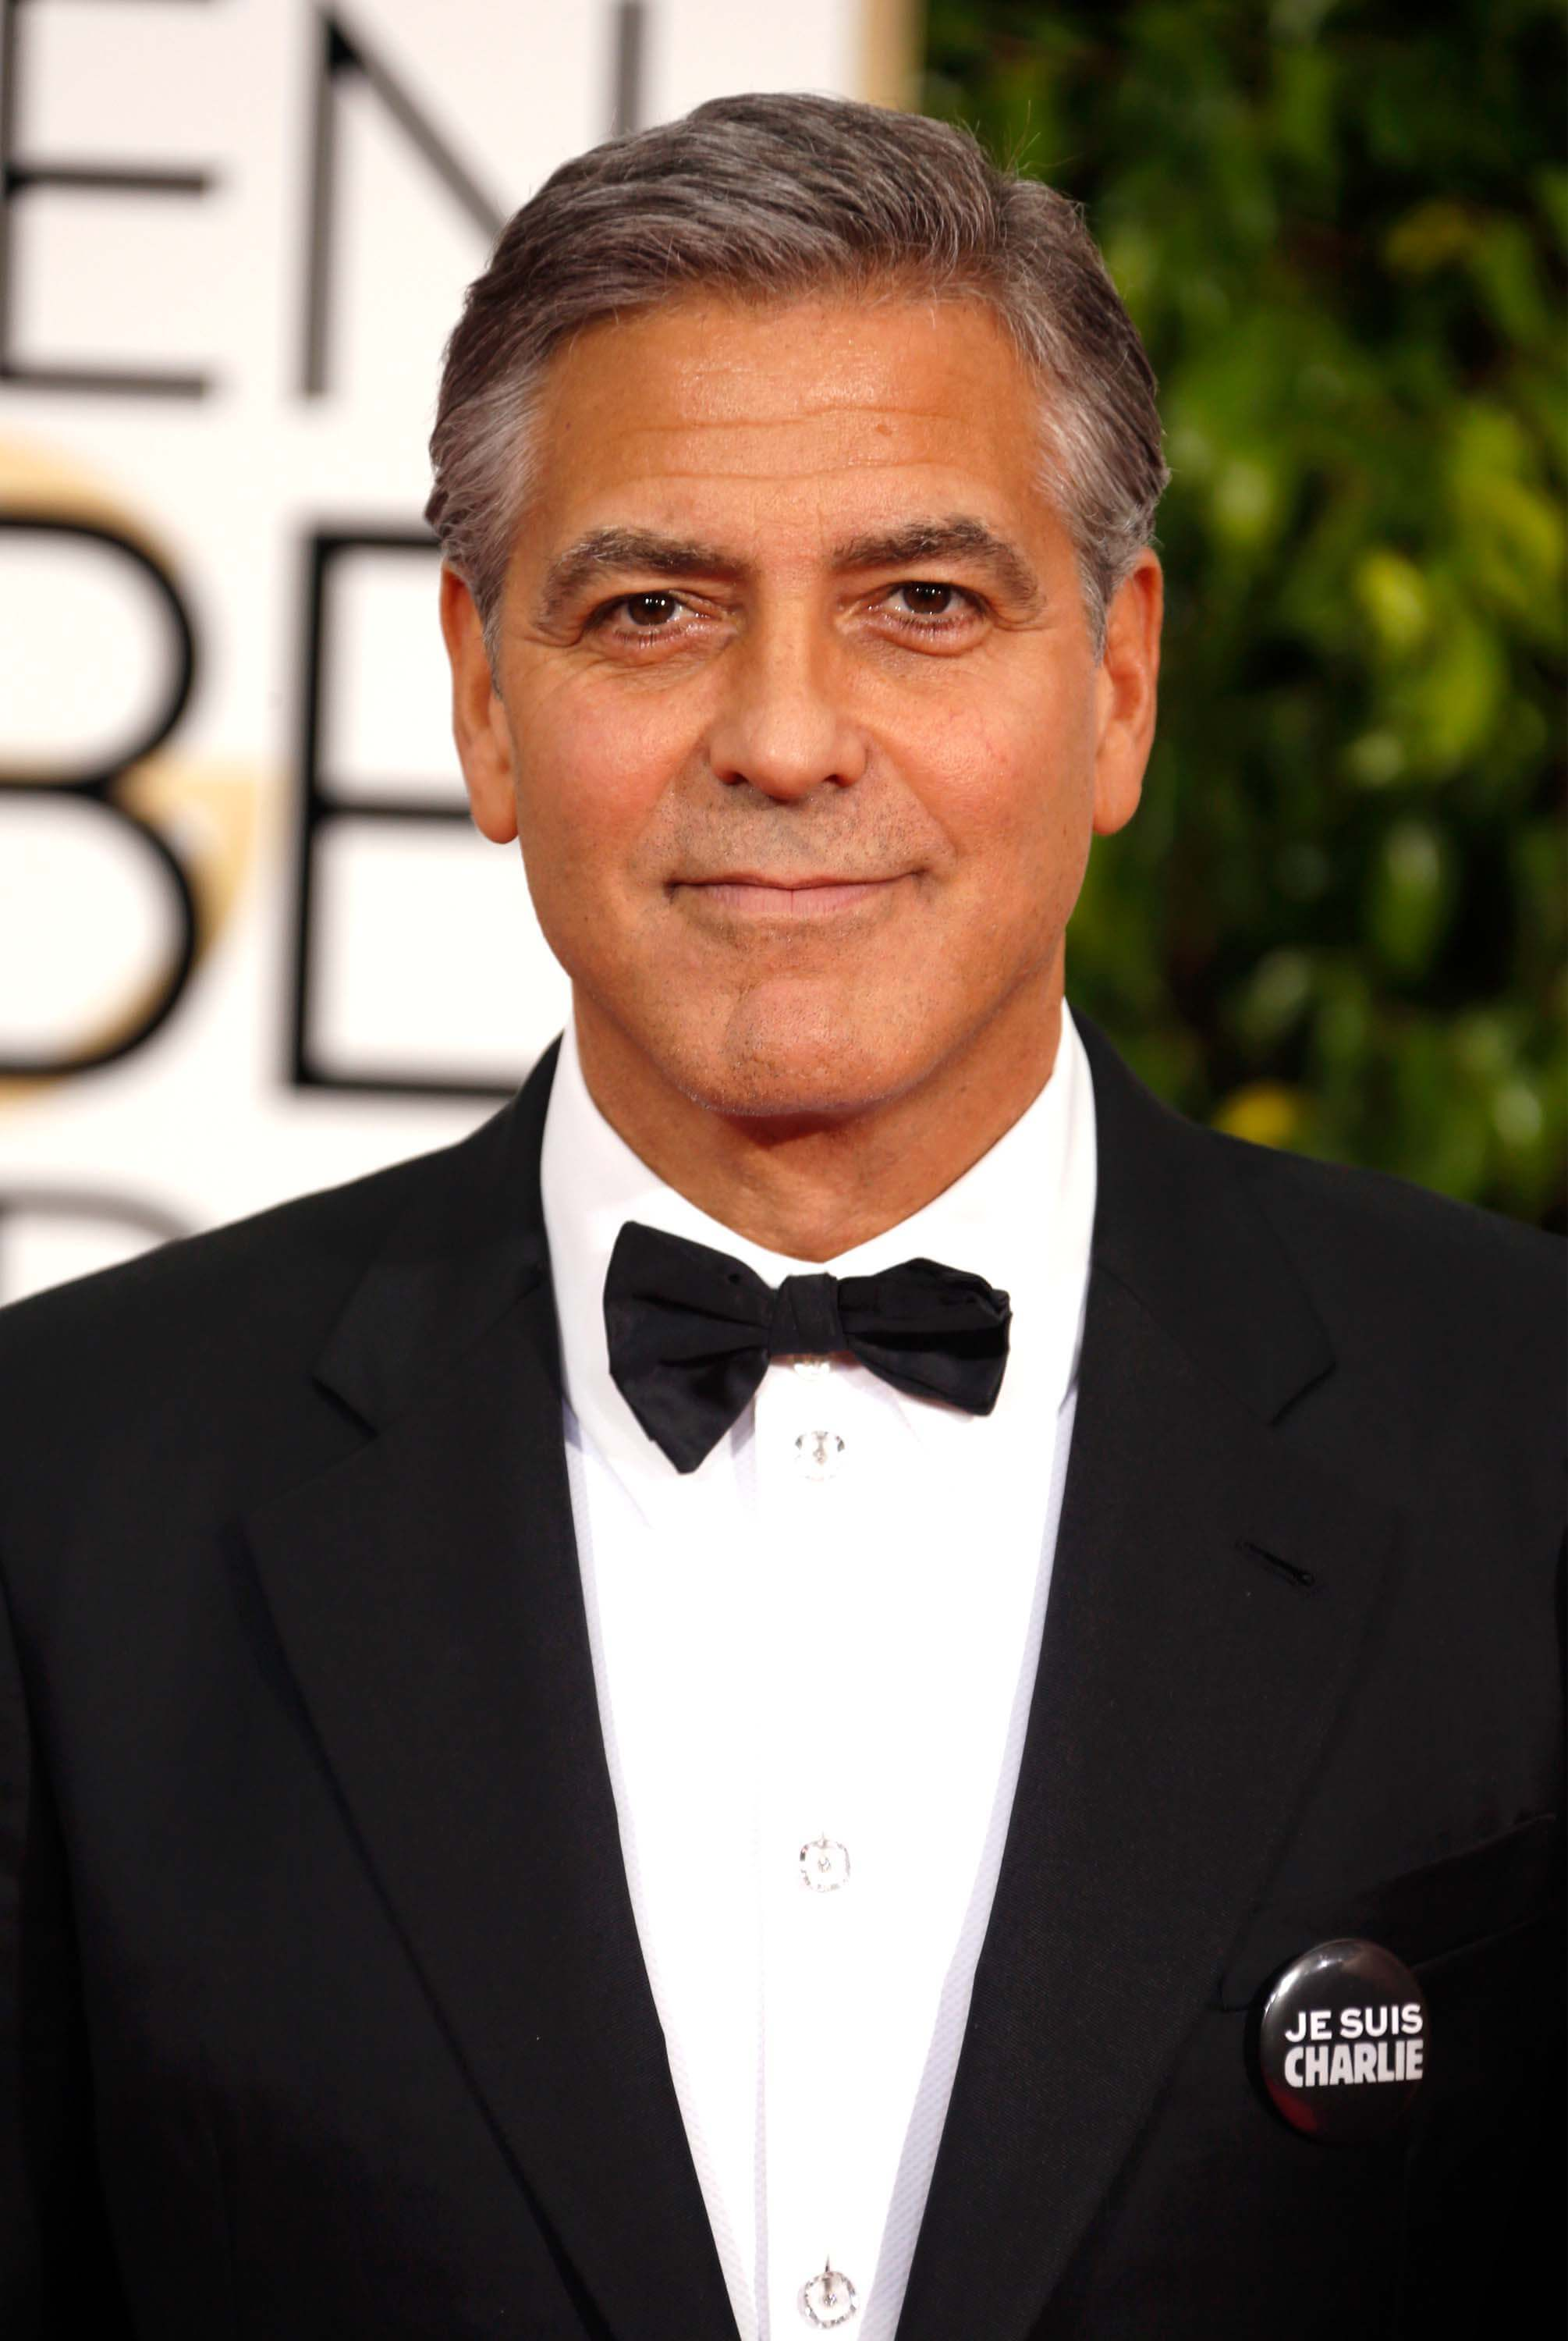 George Clooney with a hair quiff